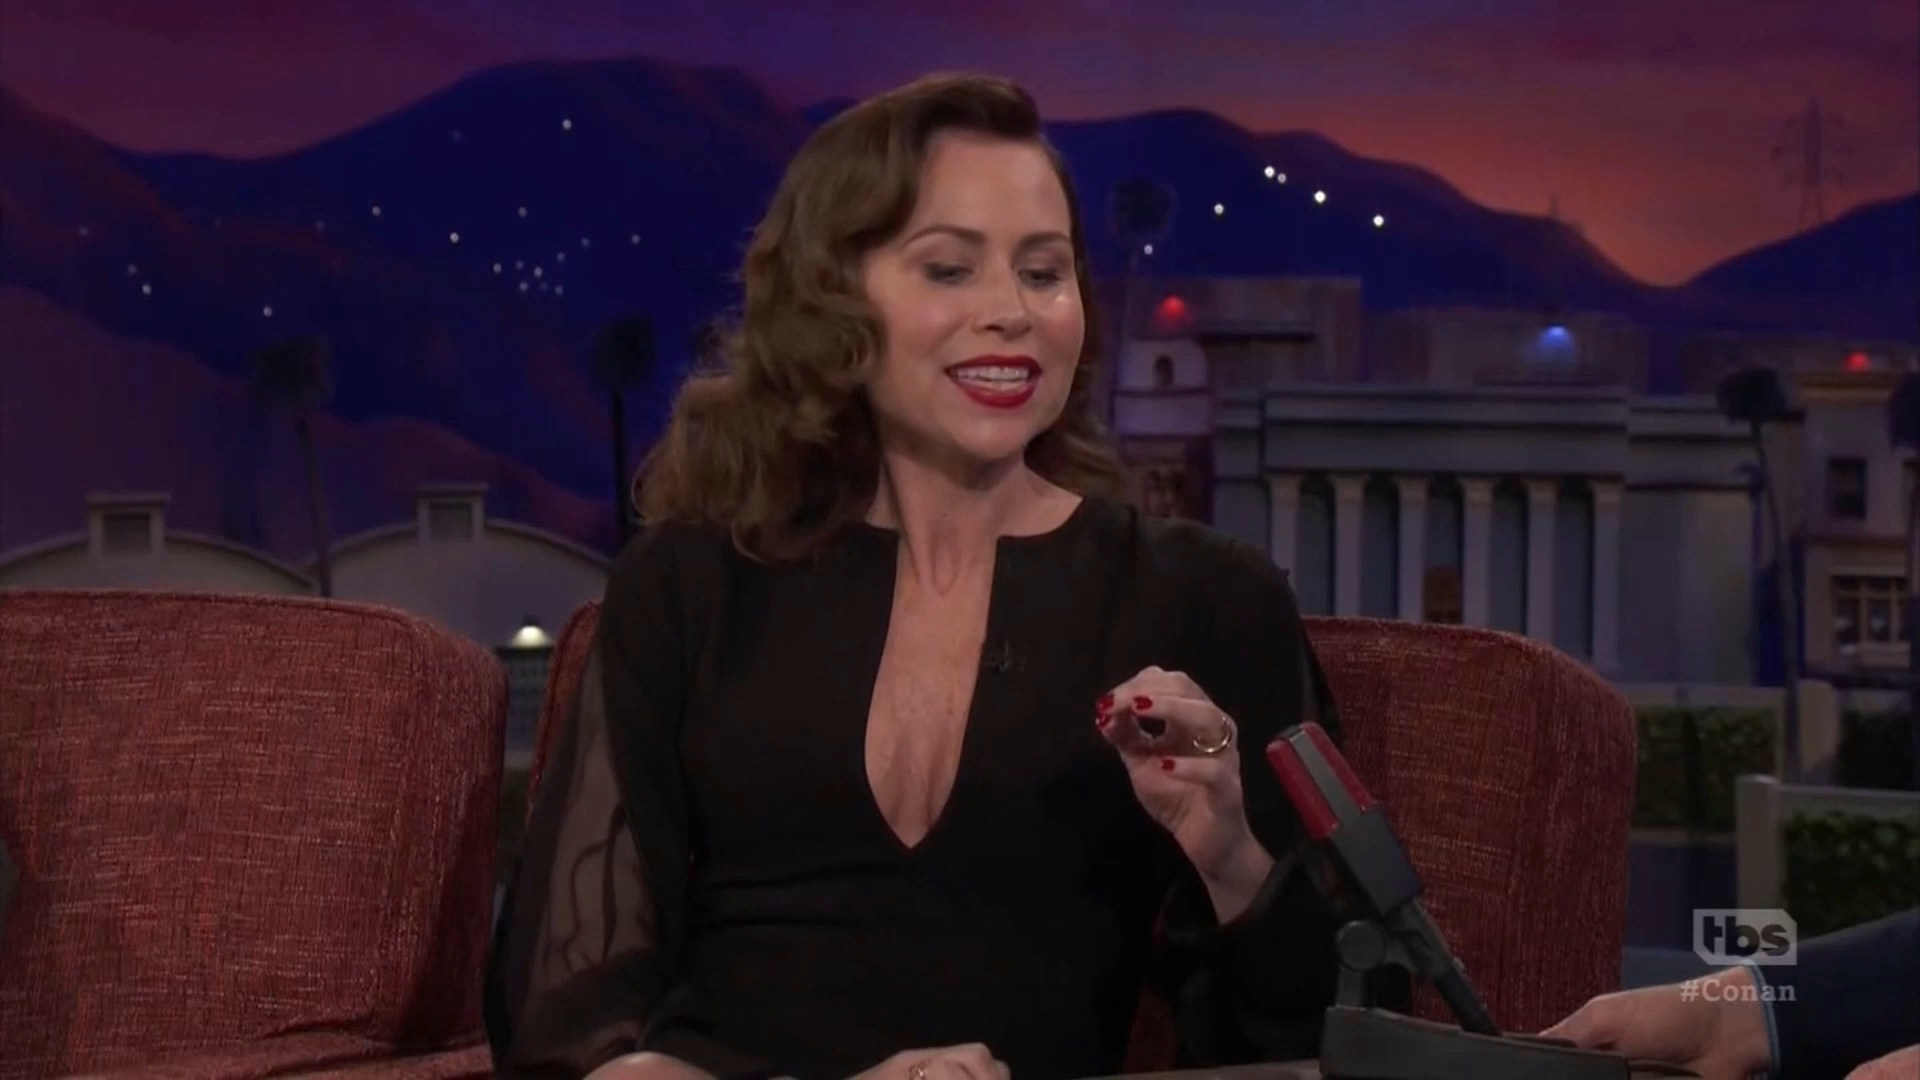 69850340_minnie-driver-conan-o-brien-show-12-03-2018-19x-caps-_04.jpg